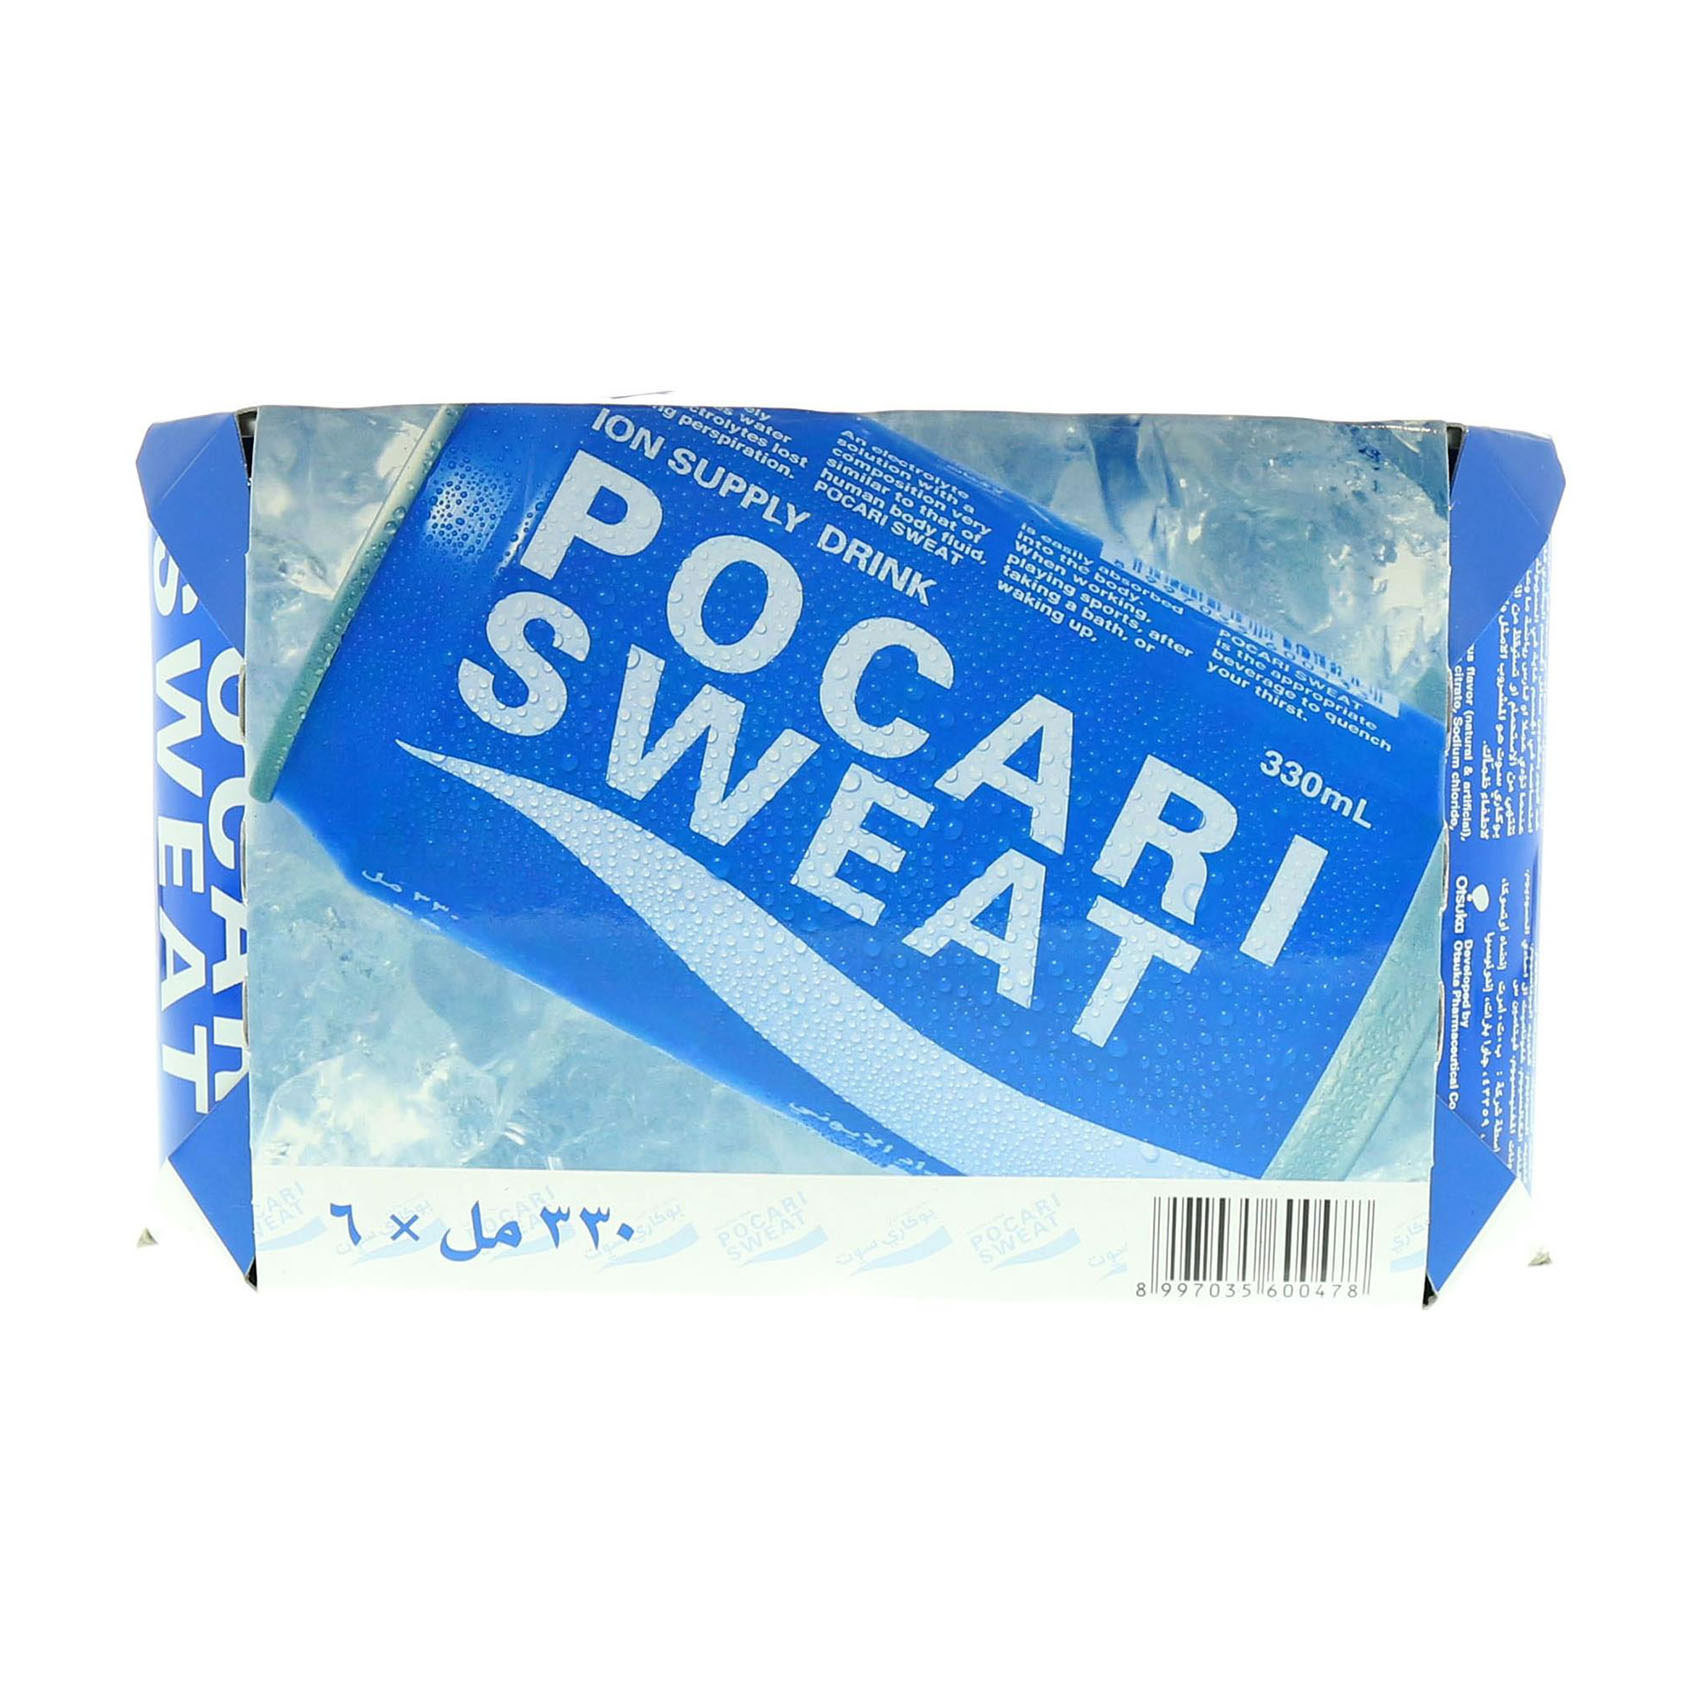 POCARI SWEAT DRINK 330MLX6